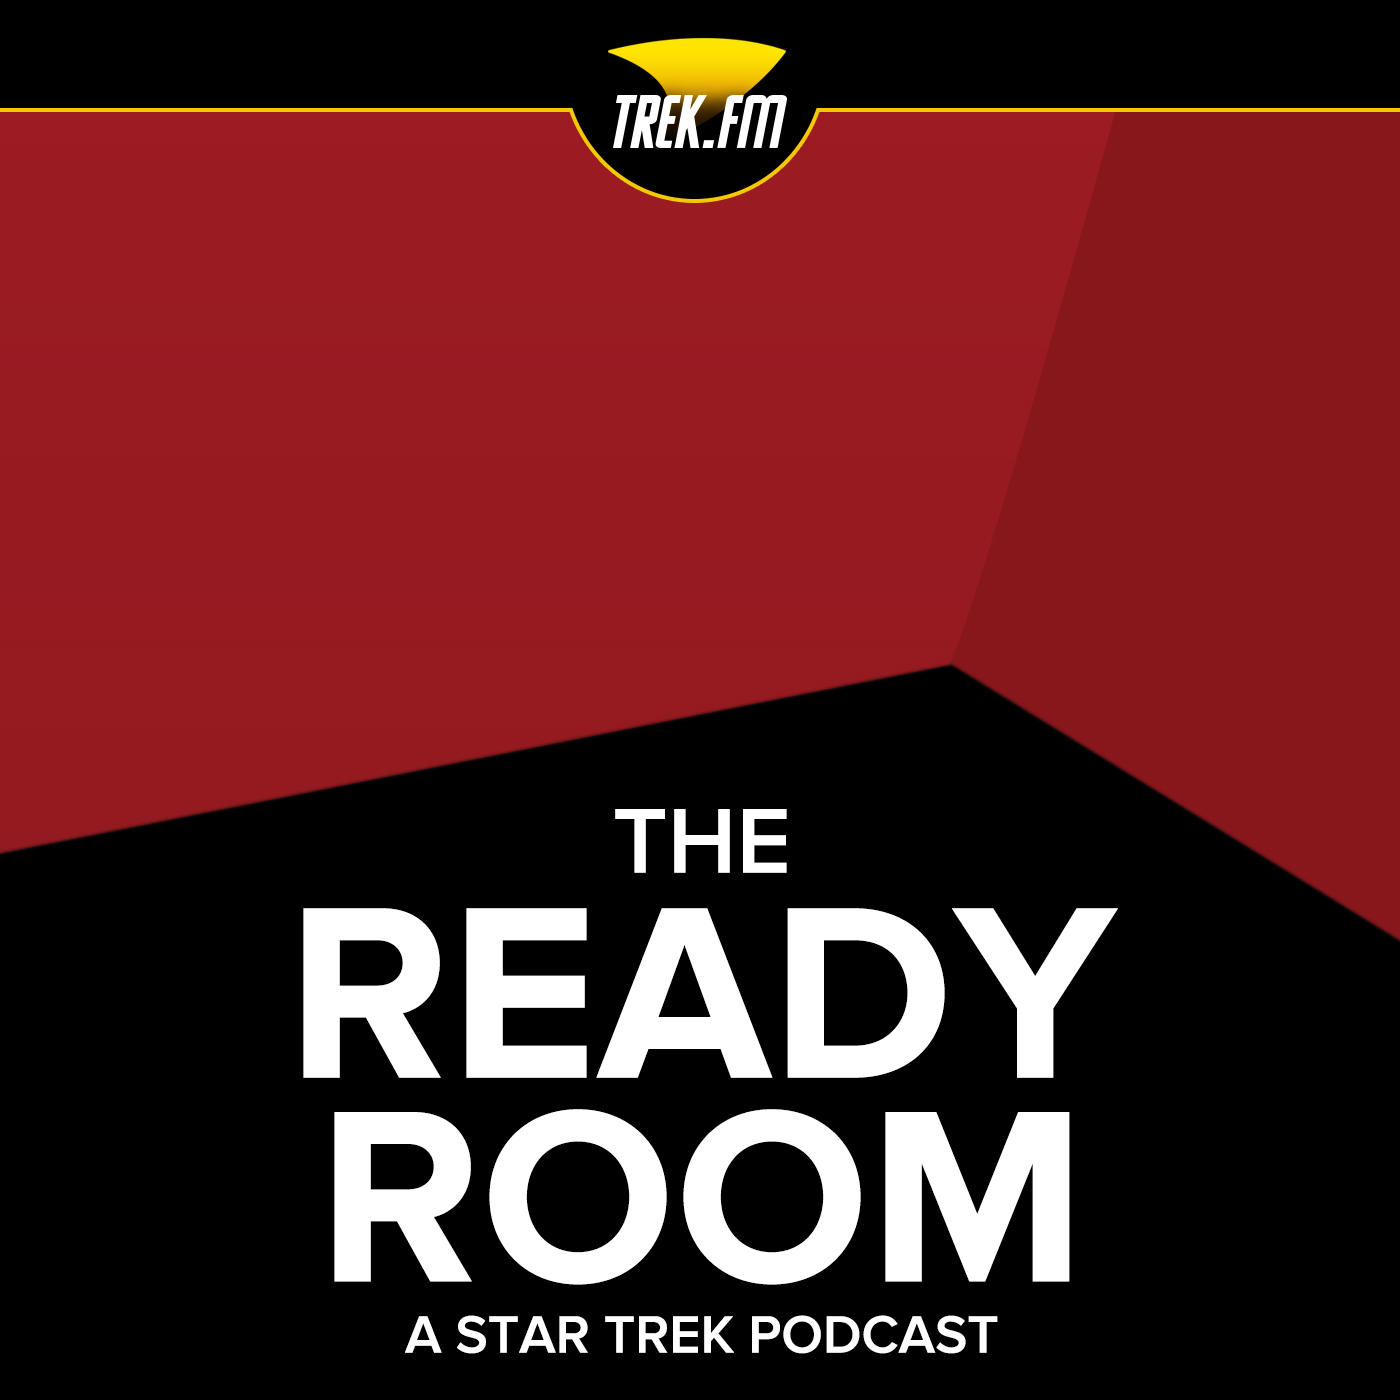 Star Trek Podcast | The Ready Room - News and Discussion | Trek.fm